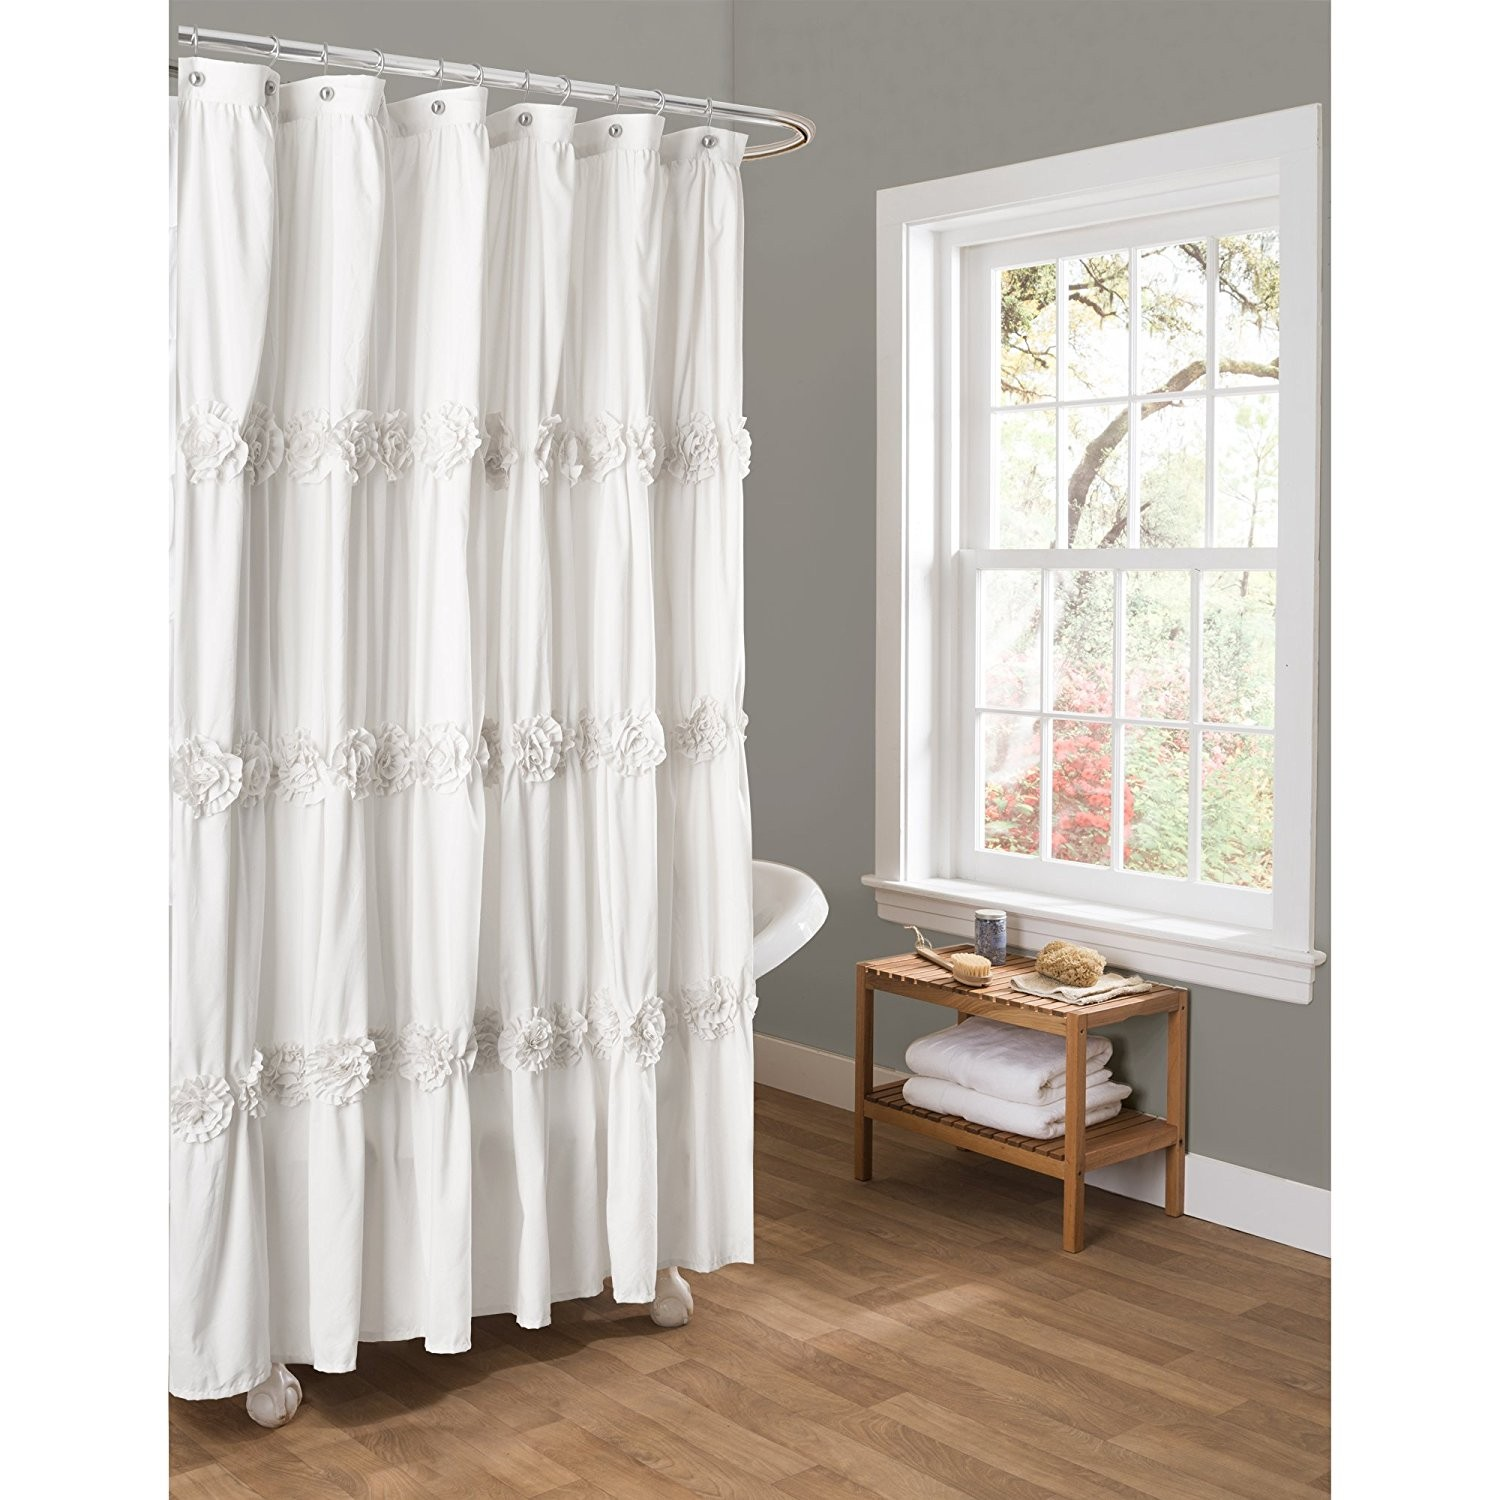 White Bathroom Curtains Fancy Lush Decor Darla Shower Curtain By Inch Construction